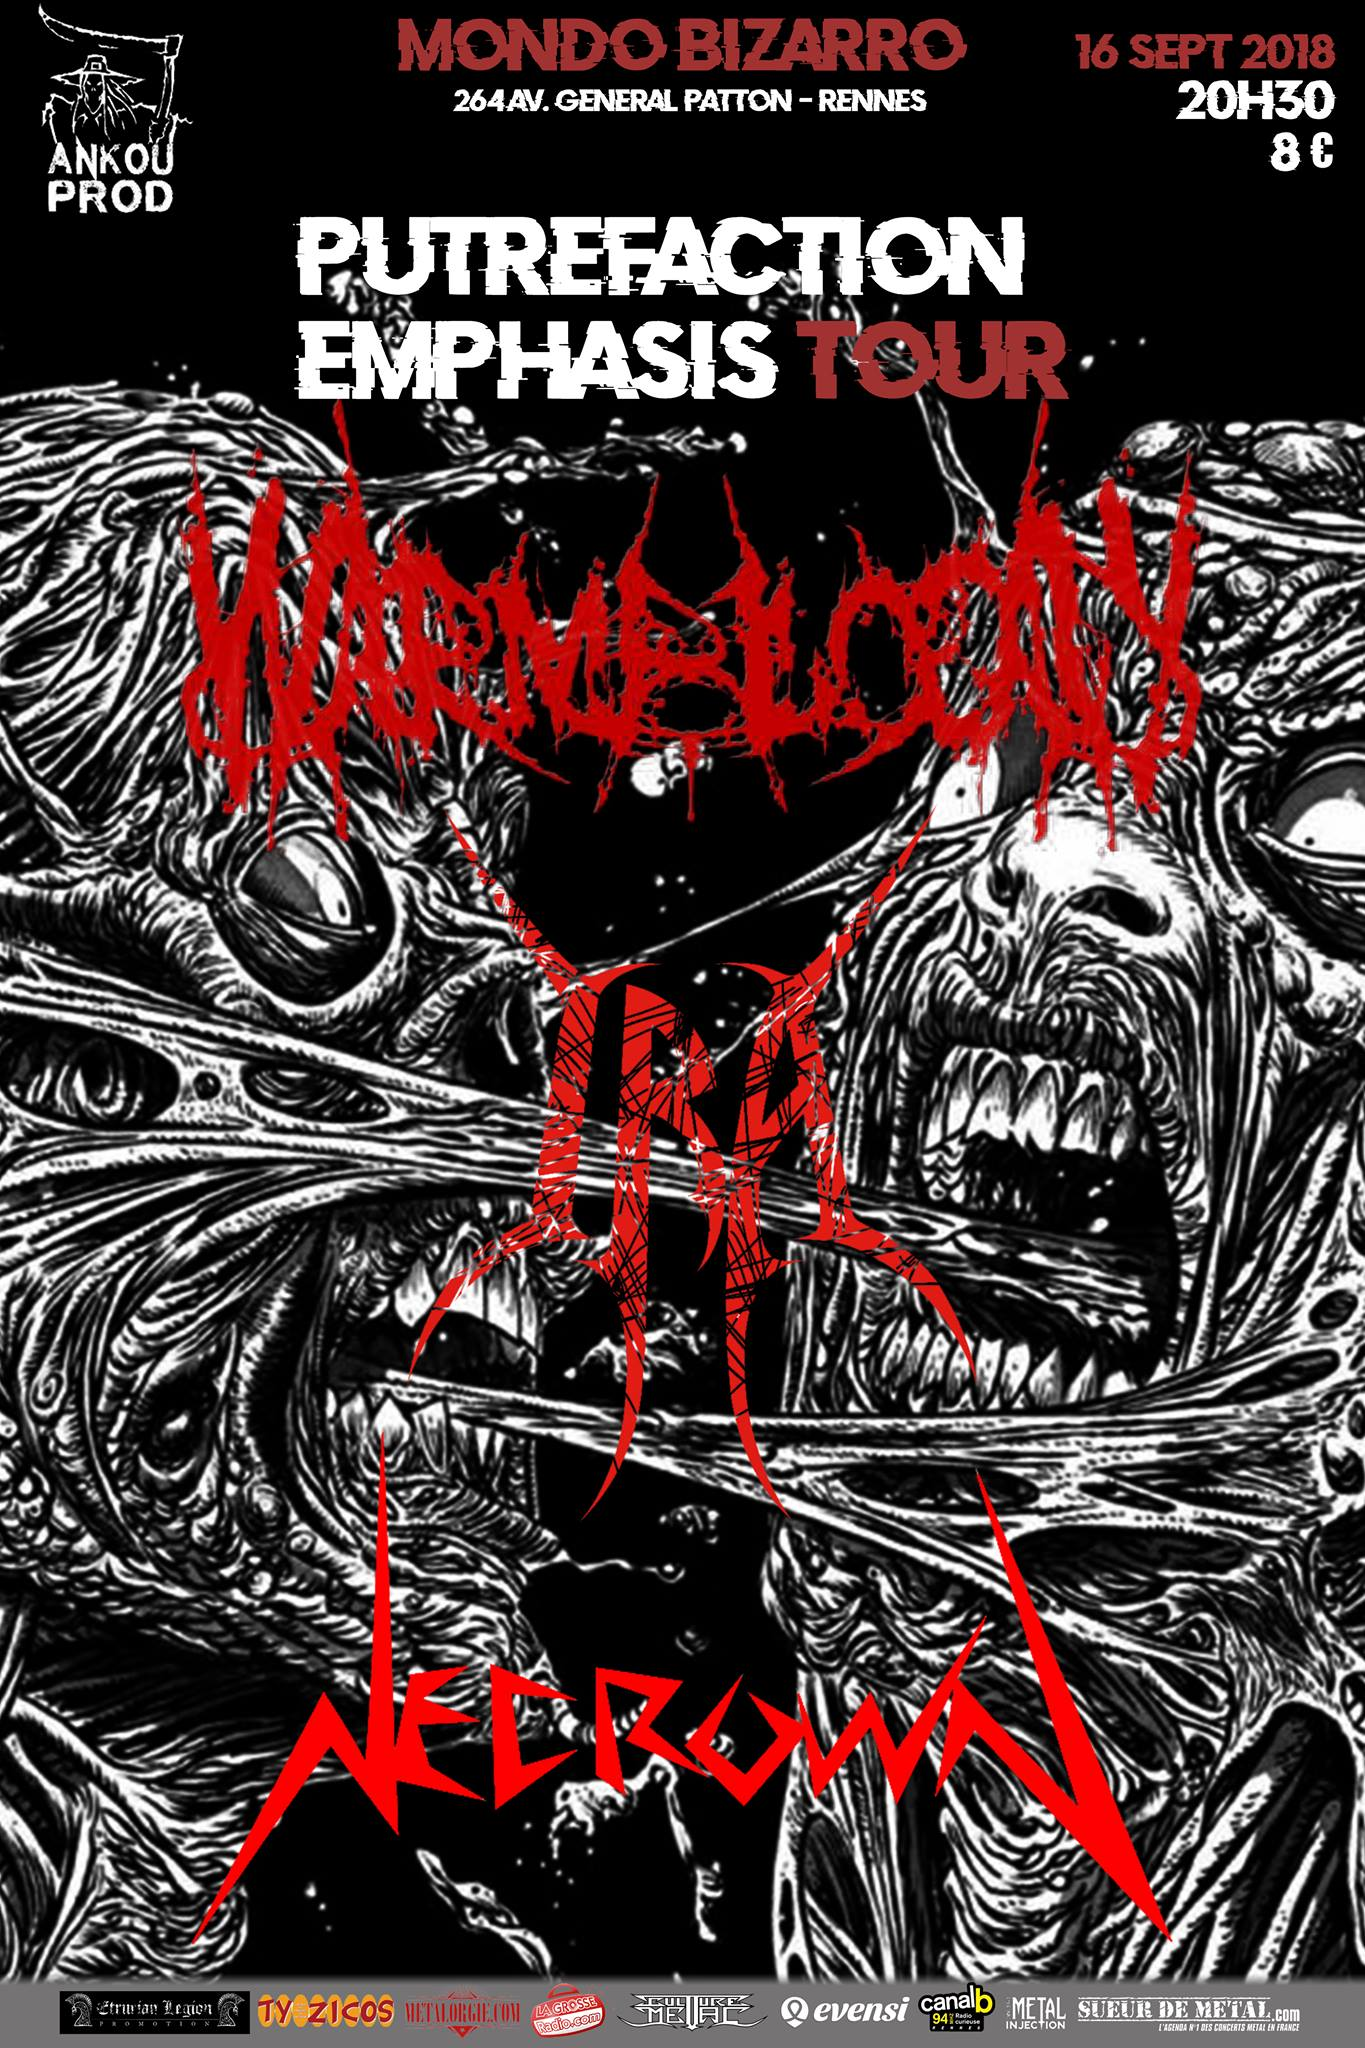 Putrefaction emphasis tour